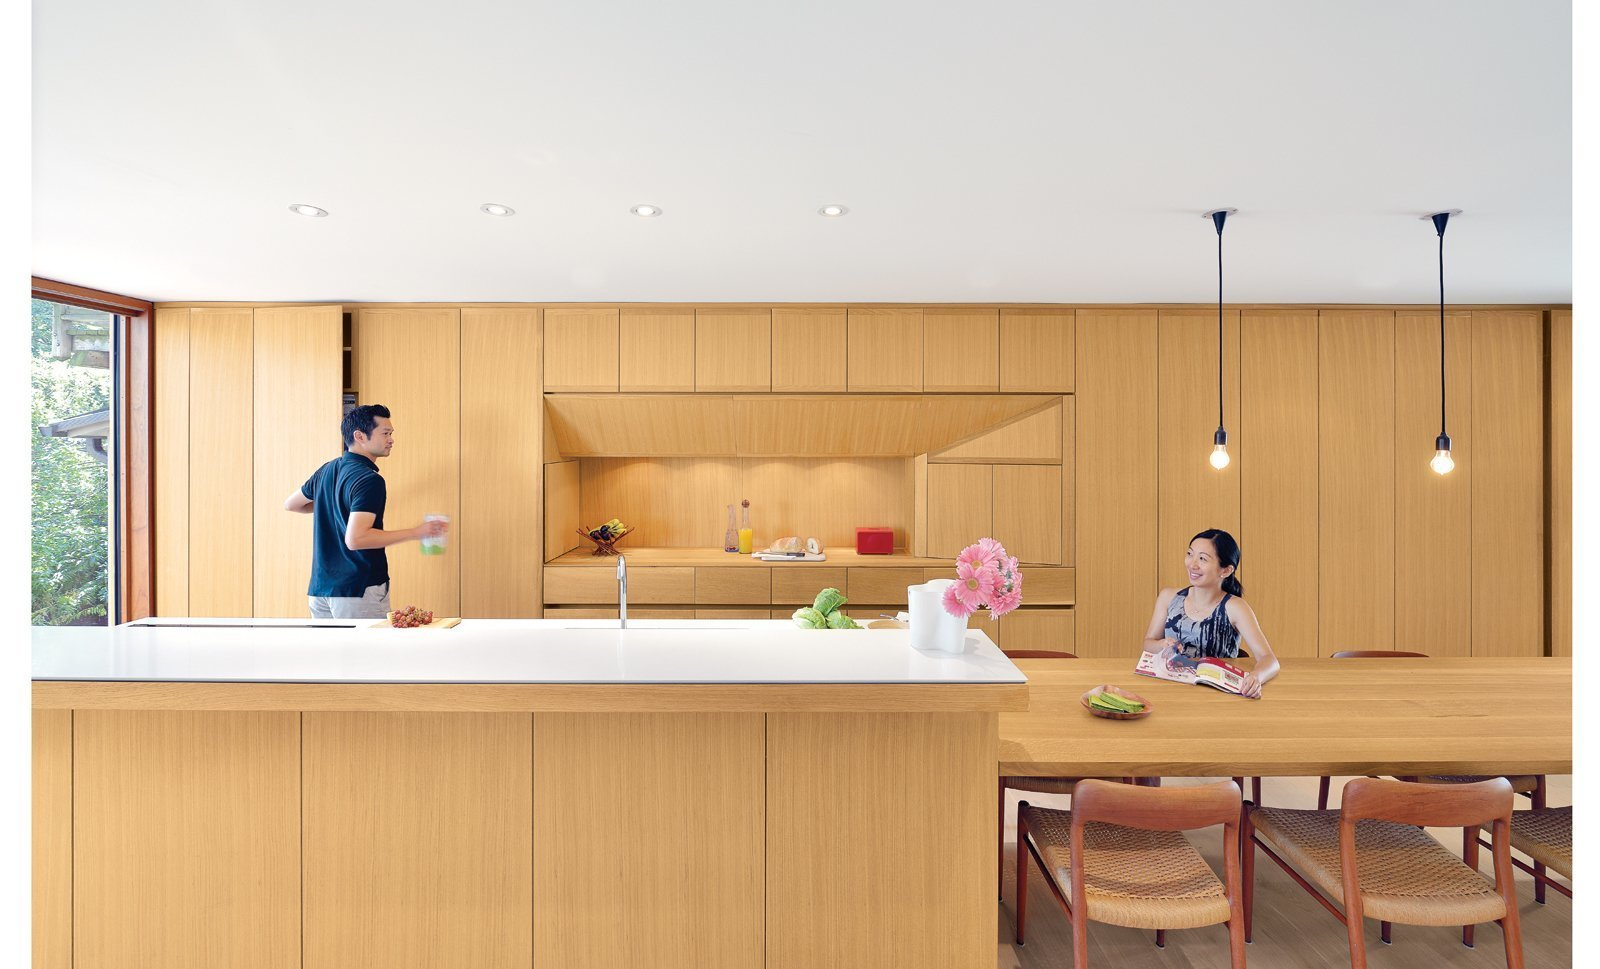 10 Homes With Clever Storage Solutions